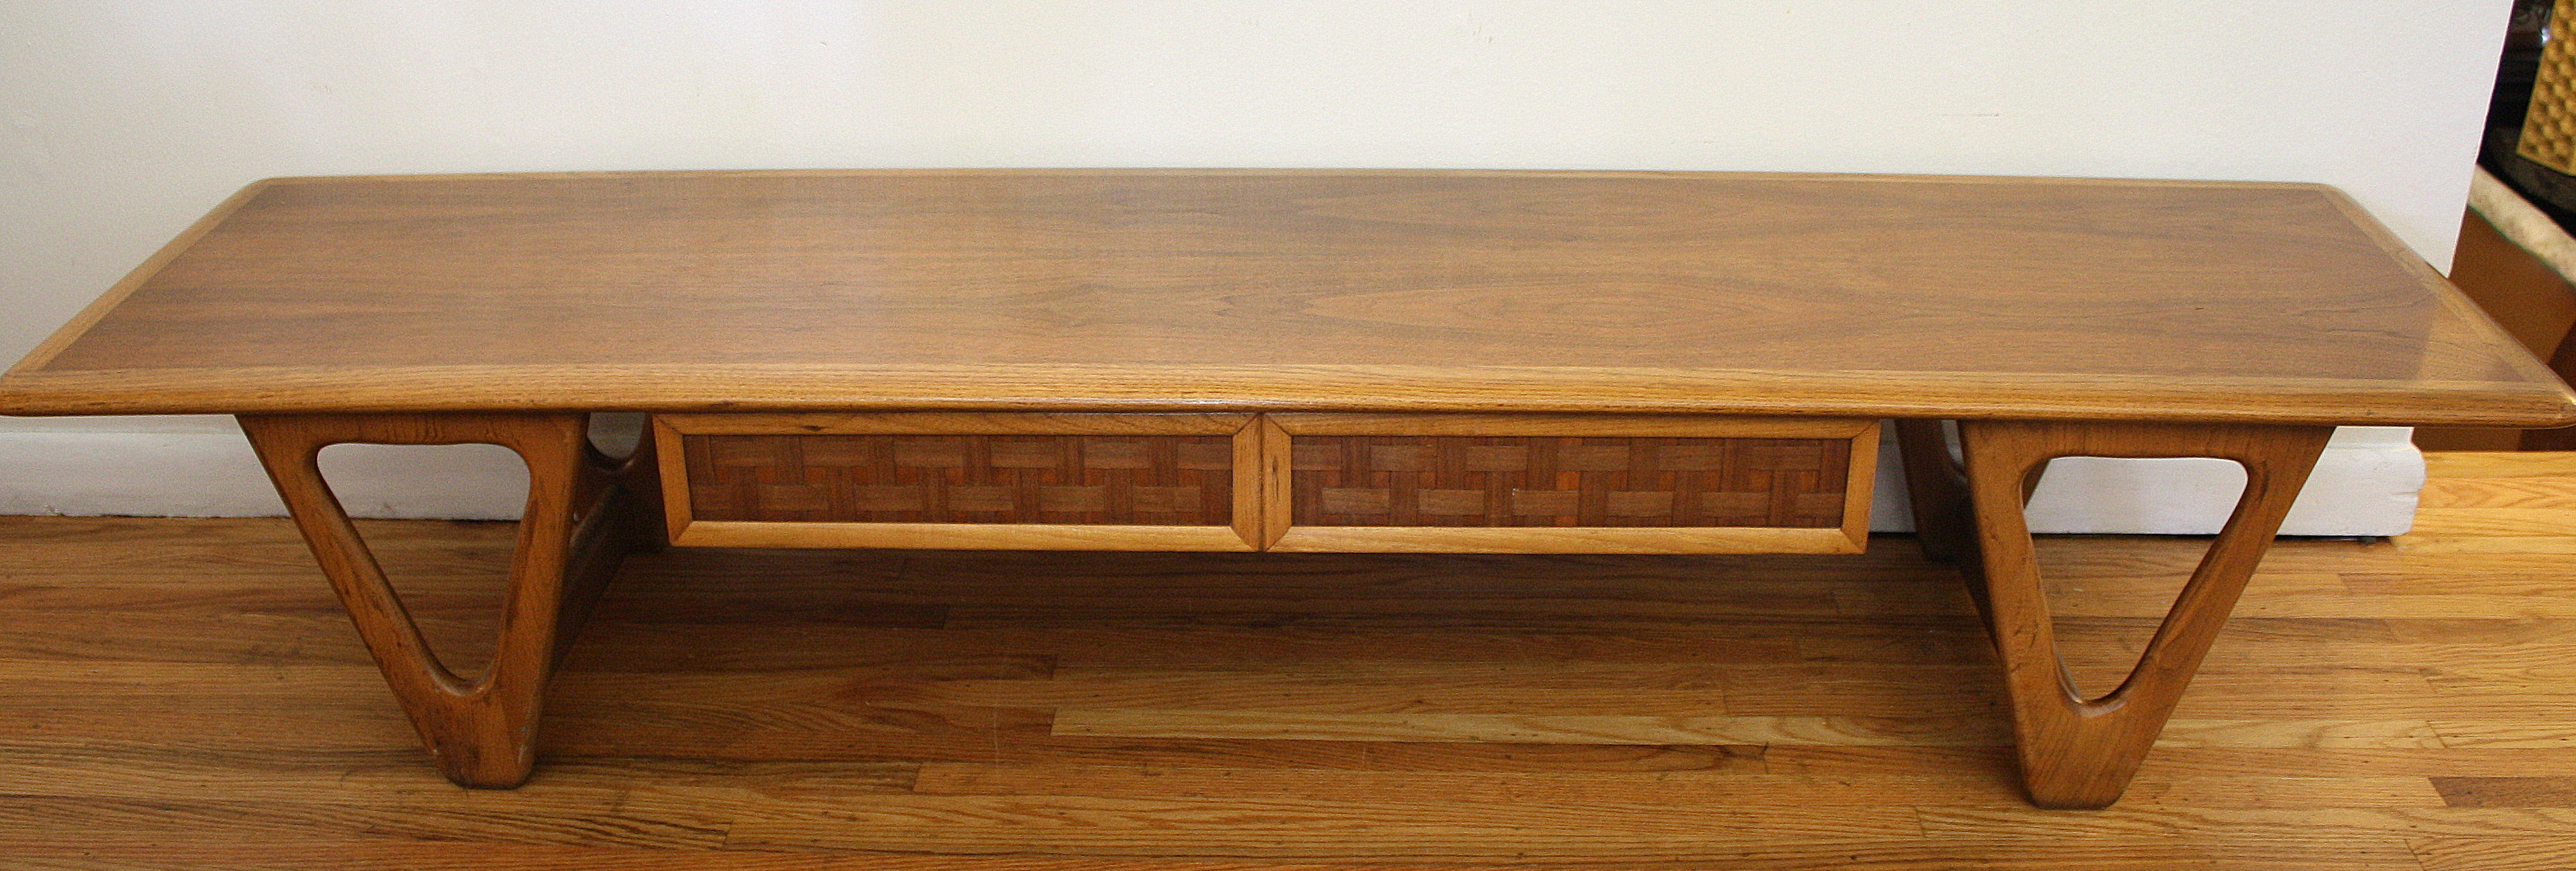 Mid Century Modern Coffee Table And Side Tables Lane Perception Series Picked